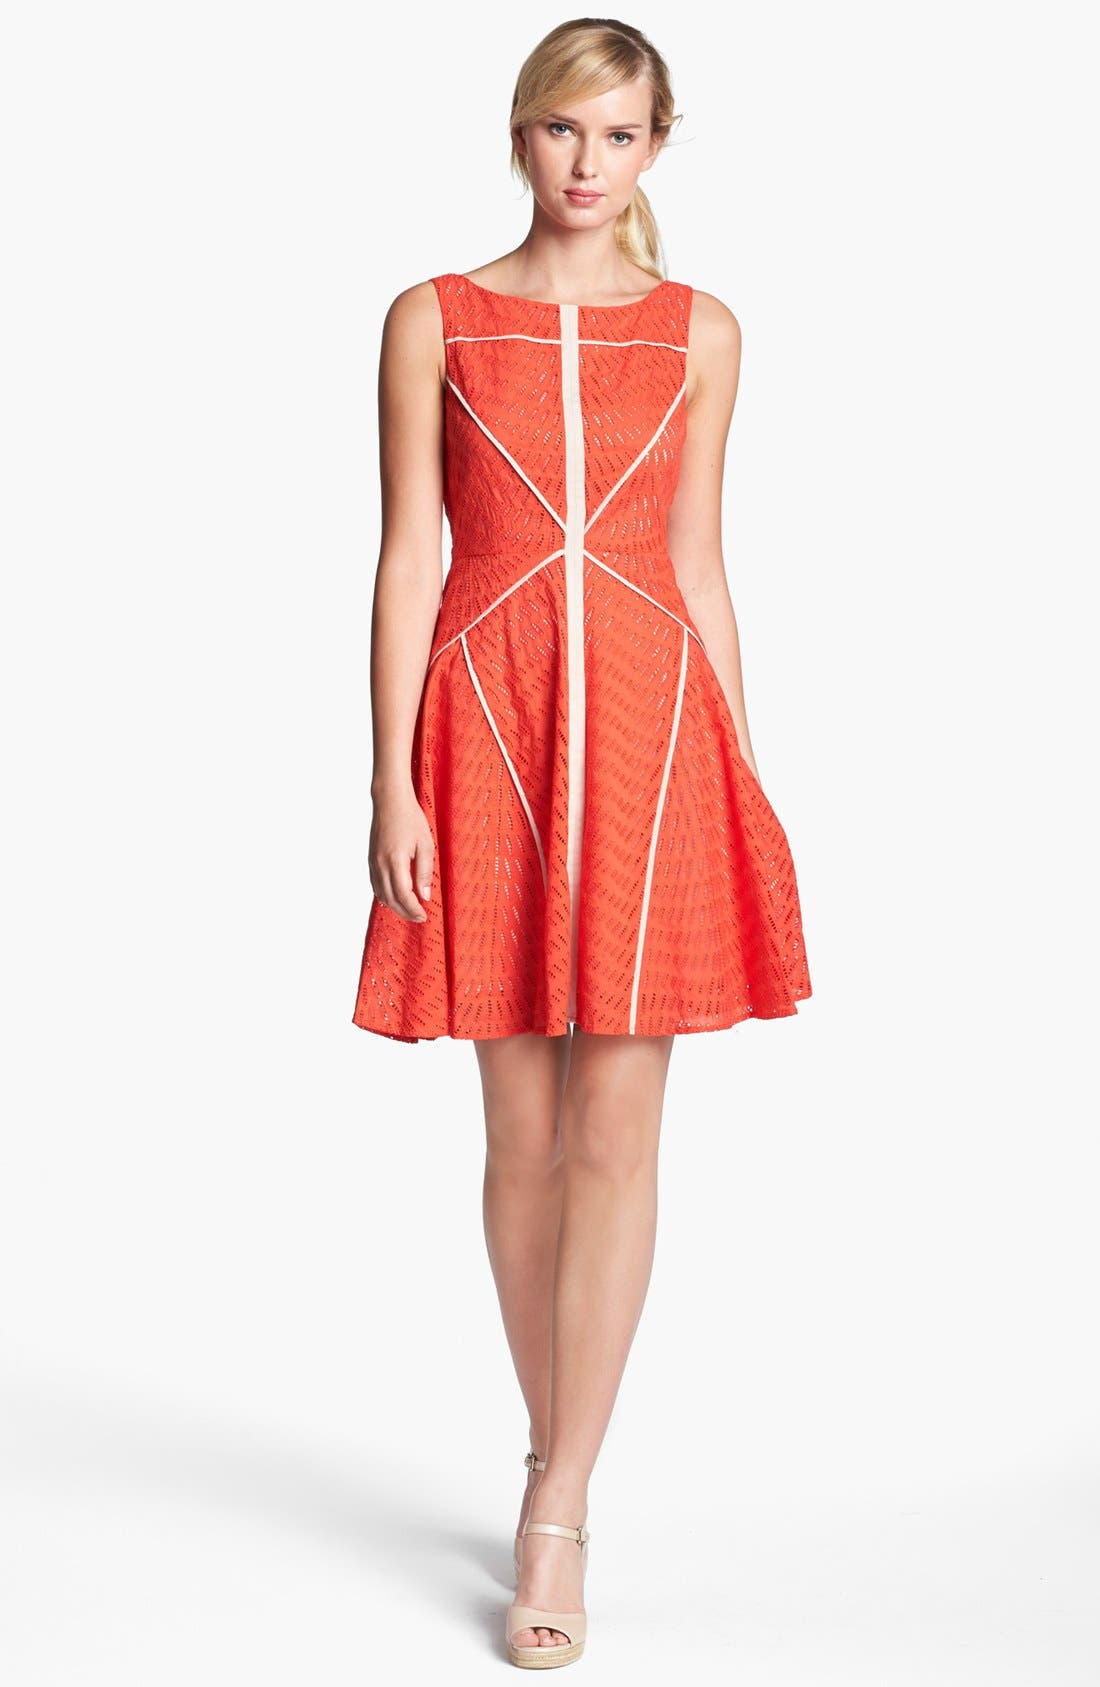 Main Image - Vince Camuto Sleeveless Fit & Flare Dress